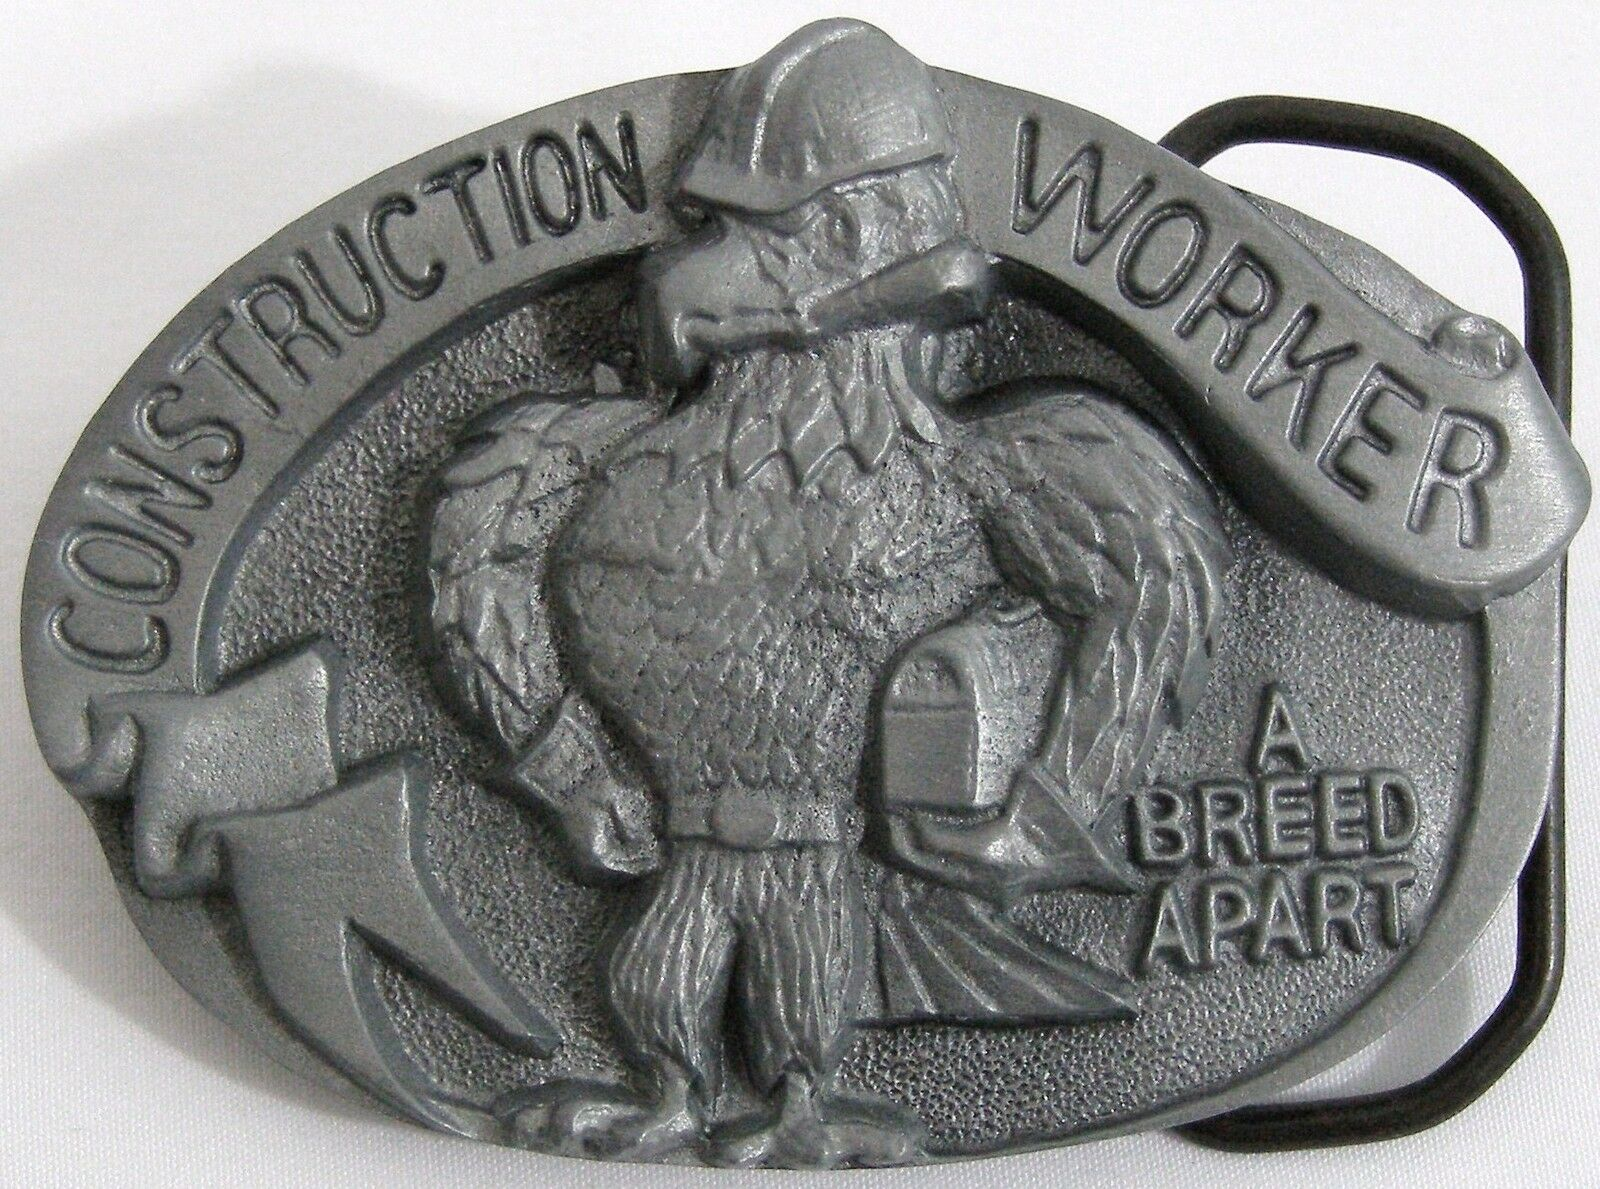 BELT BUCKLES Construction Worker A Breed Apart Eagle Gray Oval Professions NWOT!